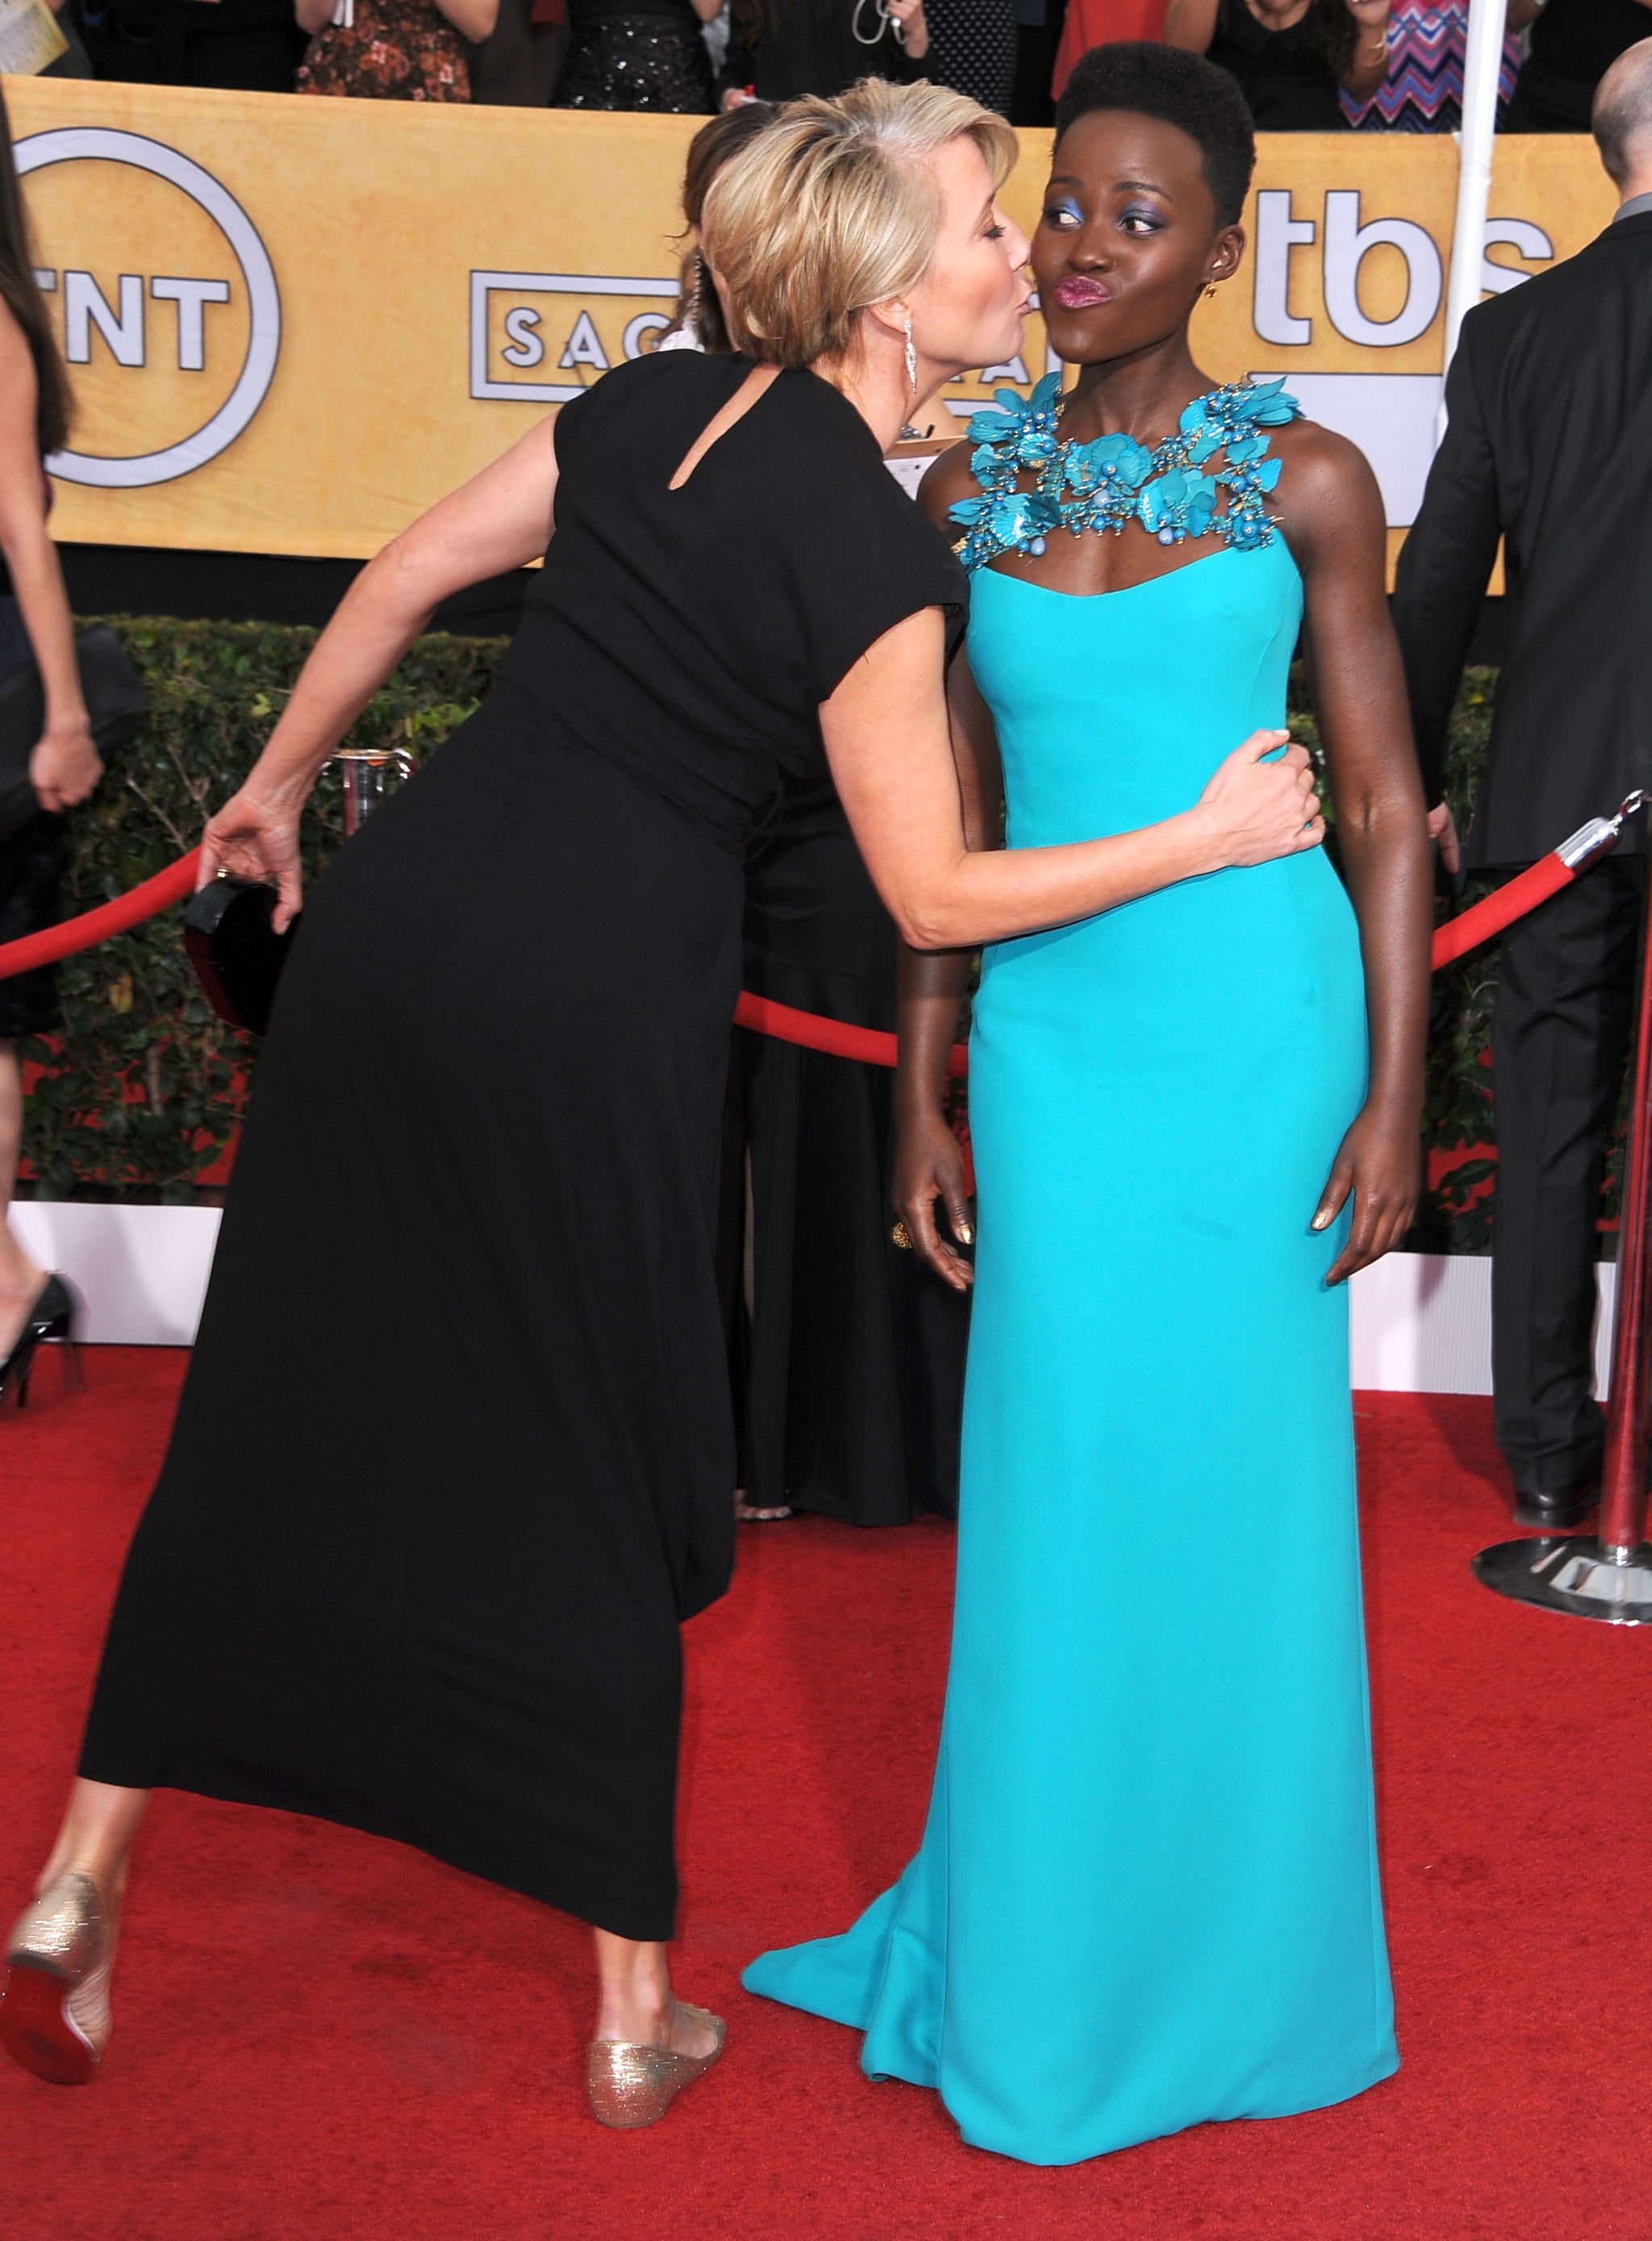 Emma Thompson went in for the side kiss with Lupita Nyong'o at the SAGs.